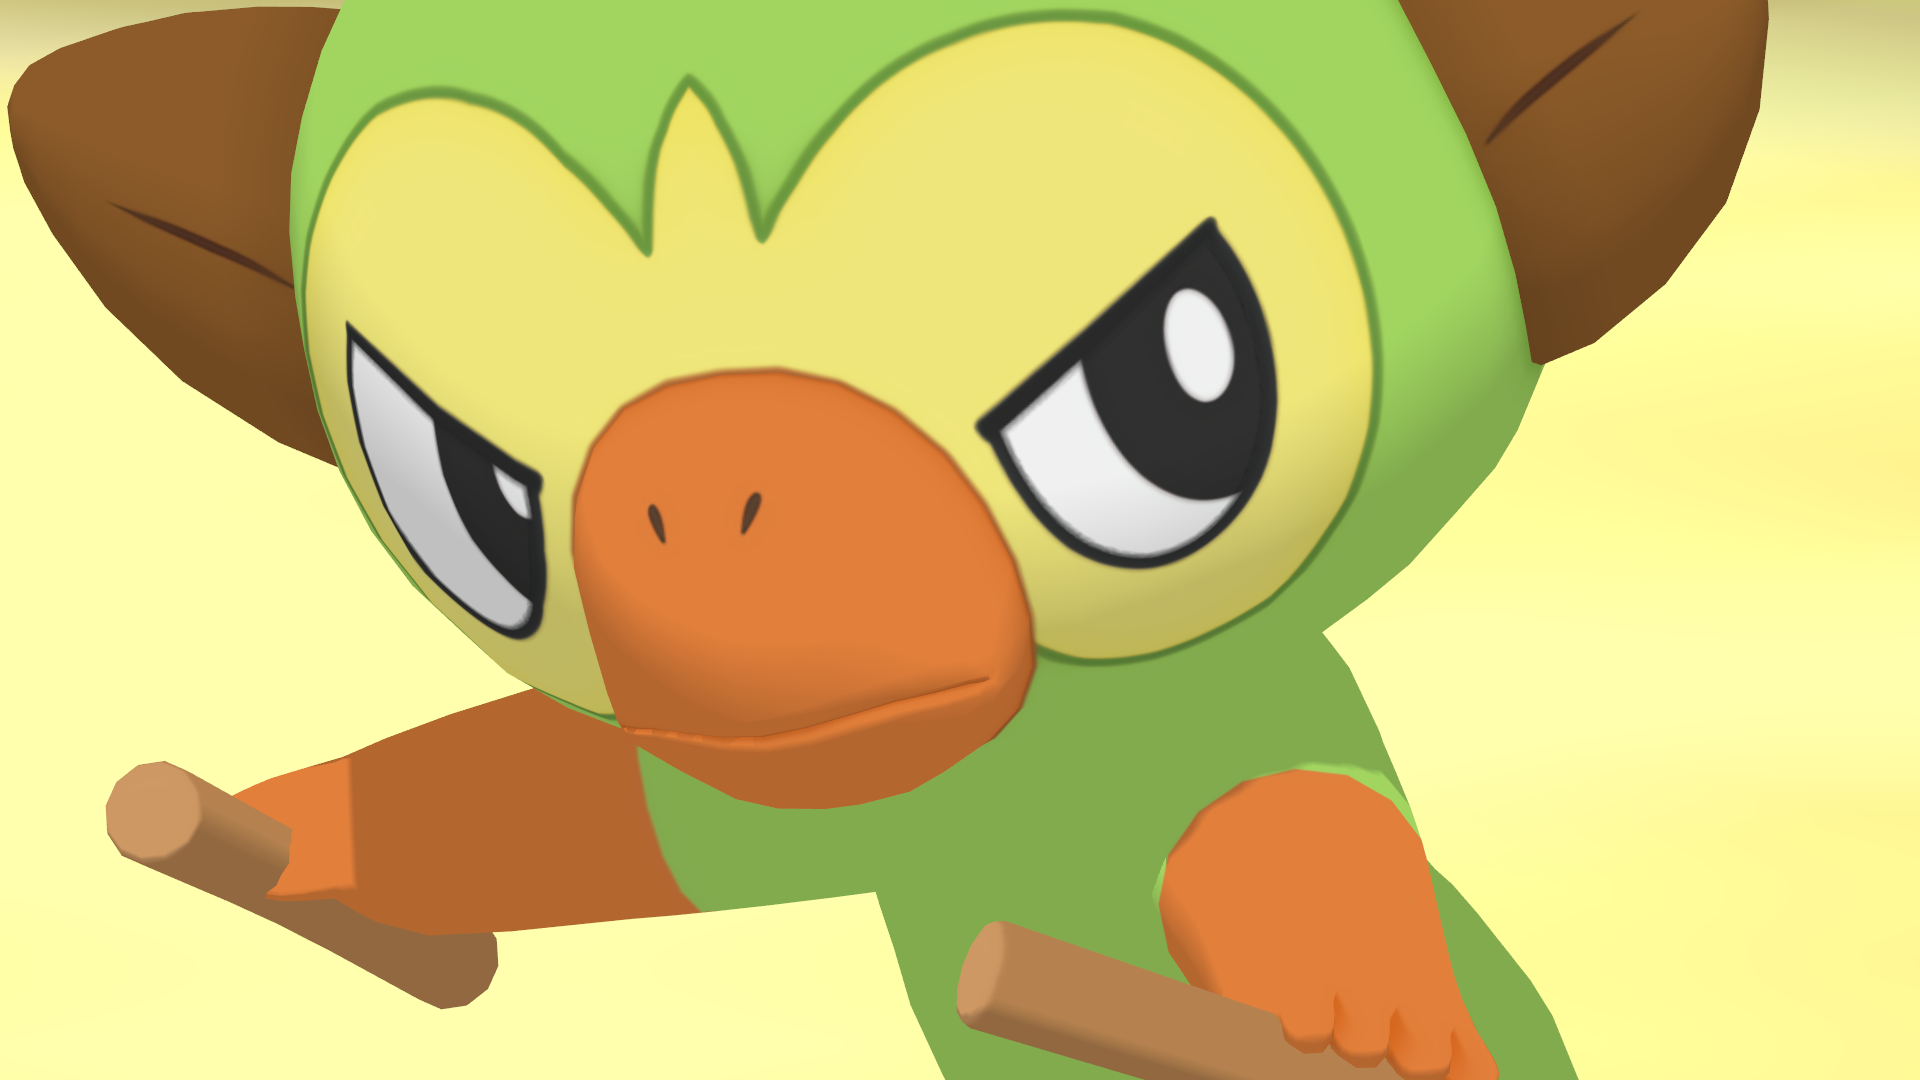 Grookey Evolutions Pokemon Sword And Shield By Guiltronprime On Deviantart At 1/3 or less of its max hp, this pokemon's attacking stat is 1.5x with grass attacks. grookey evolutions pokemon sword and